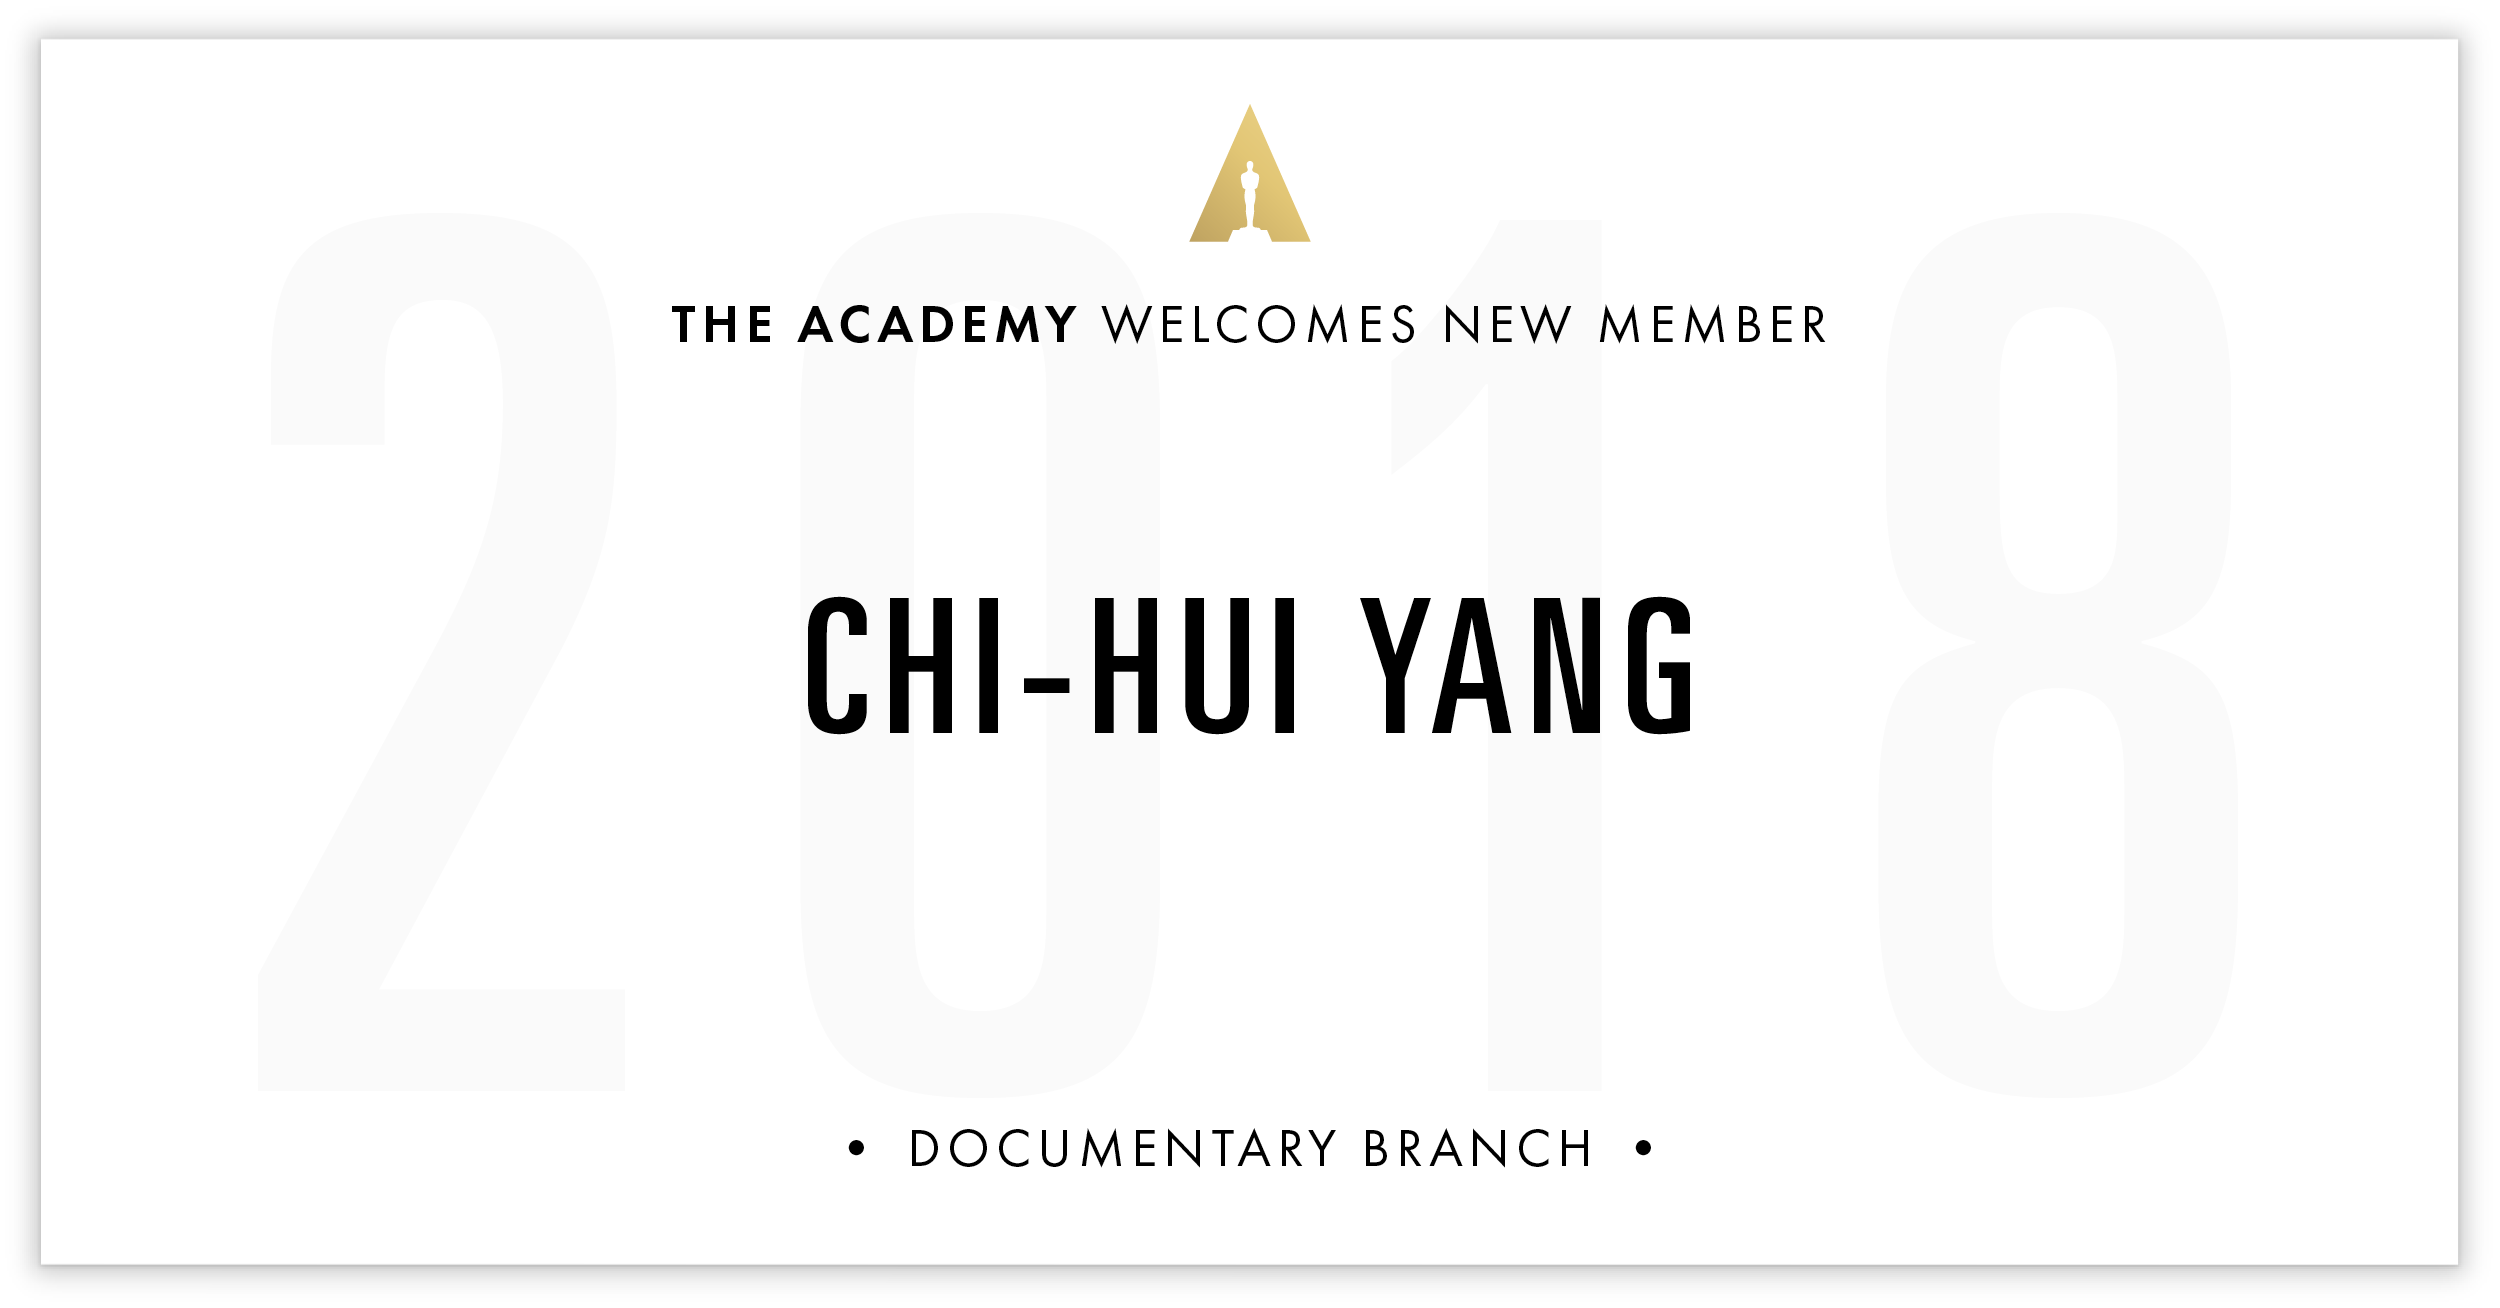 Chi-hui Yang is invited!